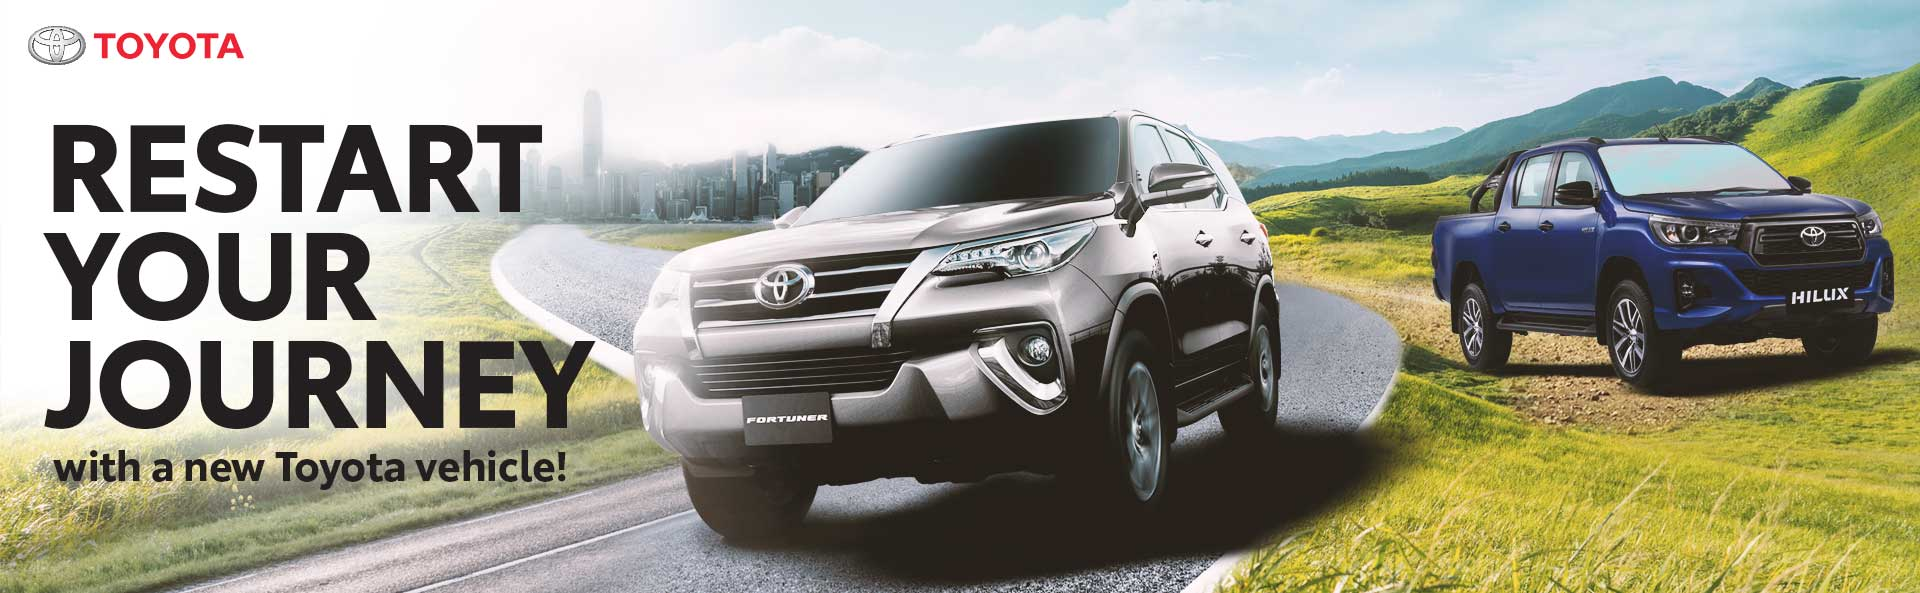 Toyota Is Offering More Great Deals This August With The Restart Your Journey Promo